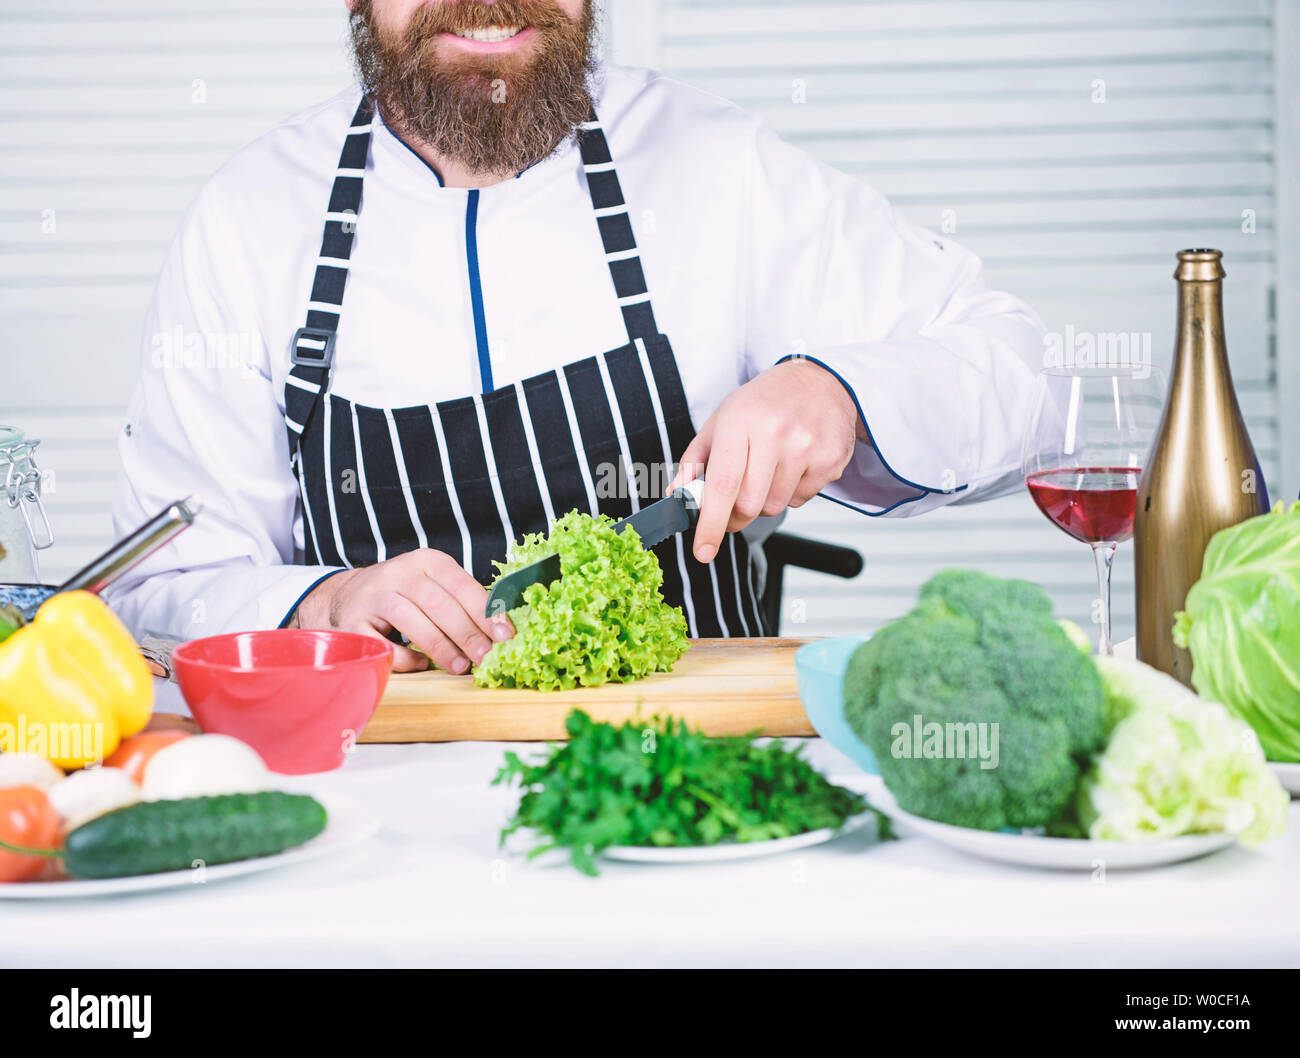 Useful for significant amount of cooking methods. Basic cooking processes. Man master chef or amateur cooking food. Sharp knife chopping vegetable. Prepare ingredient for cooking. According to recipe. - Stock Image